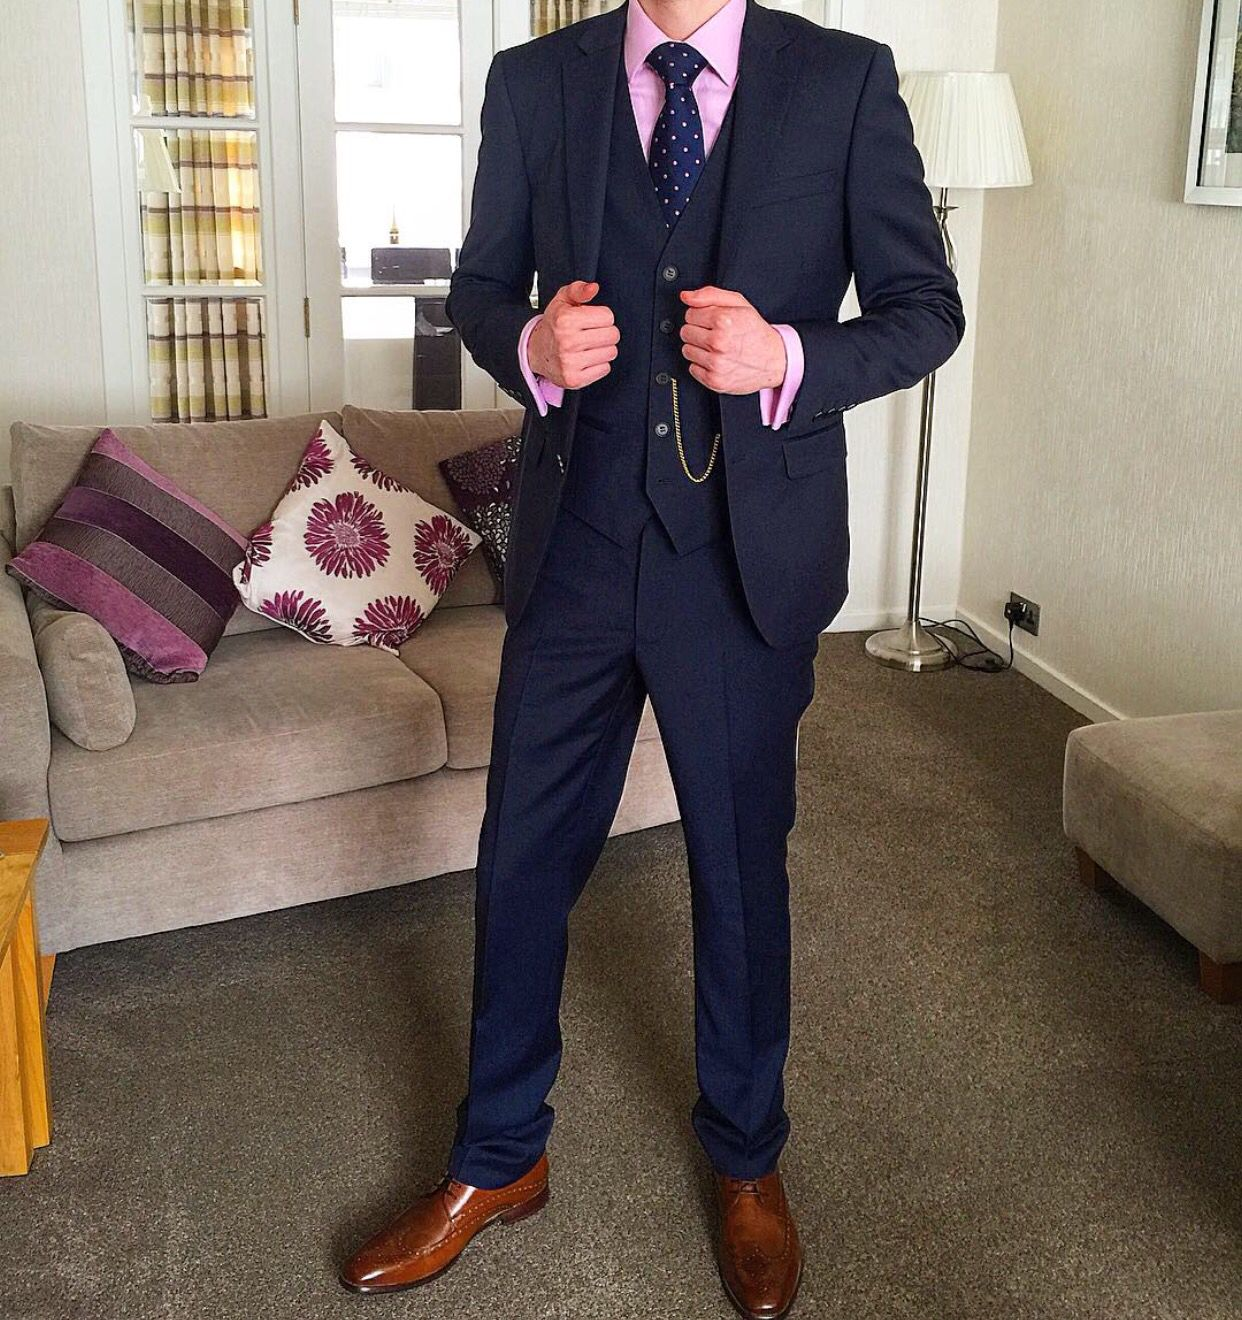 Dkny Mens Navy Suit With Pink Shirt Navy Tie And Brown Brogues